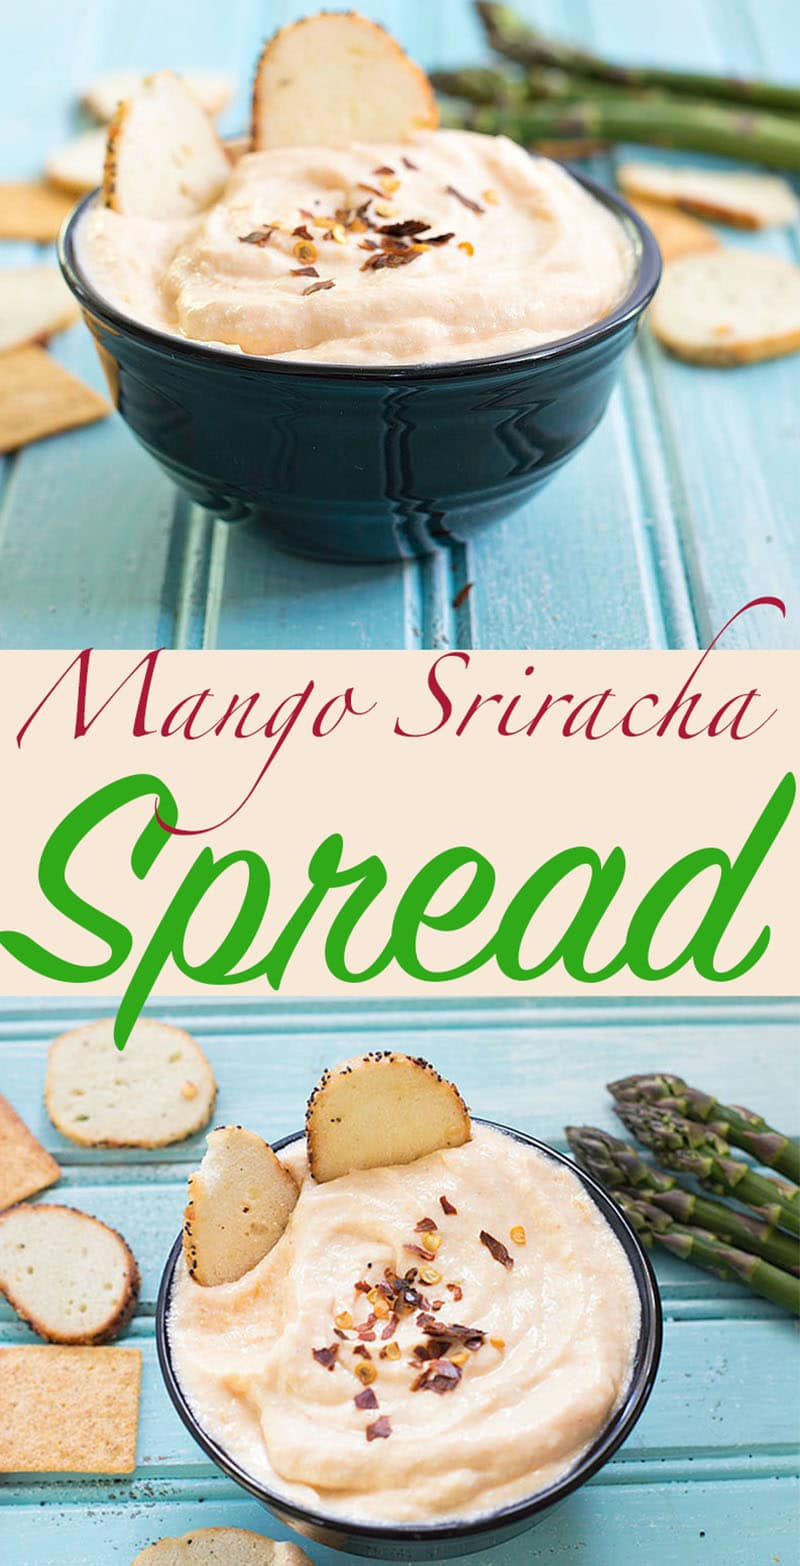 Mango sriracha spread is a simple appetizer for any recipe. Hot sriracha sauce gives the perfect level of heat and the mango adds sweetness to the recipe.